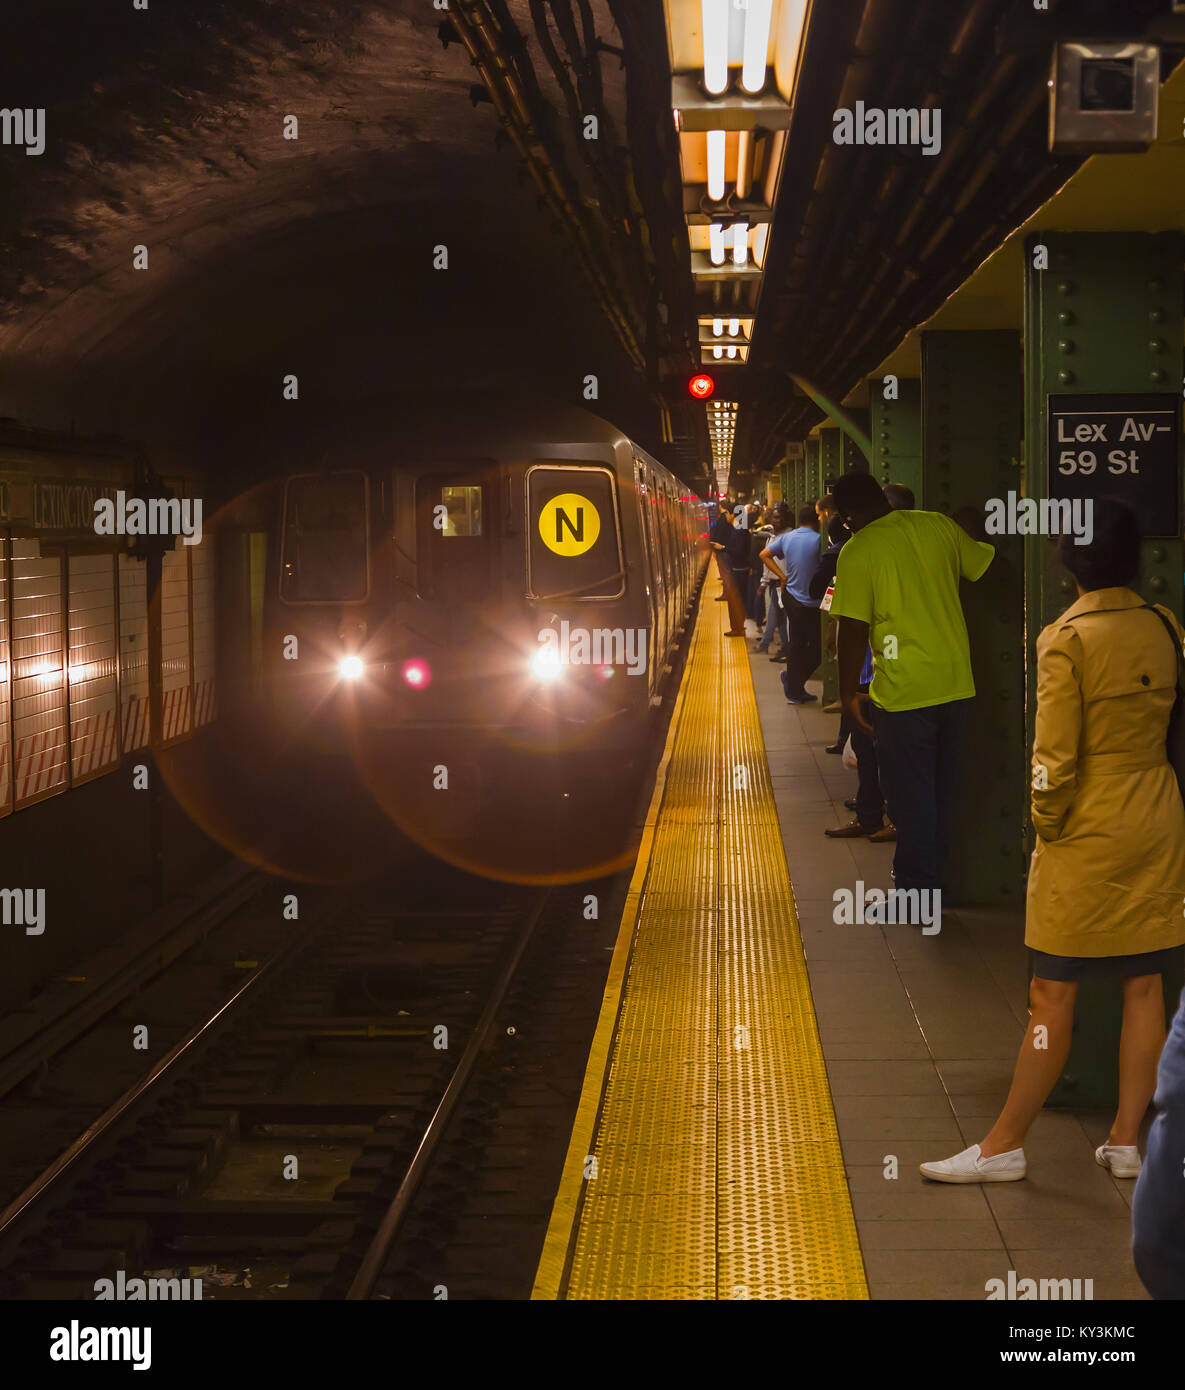 New York, New York State, United States of America.  Train arriving at Lexington Avenue New York City Subway station. - Stock Image